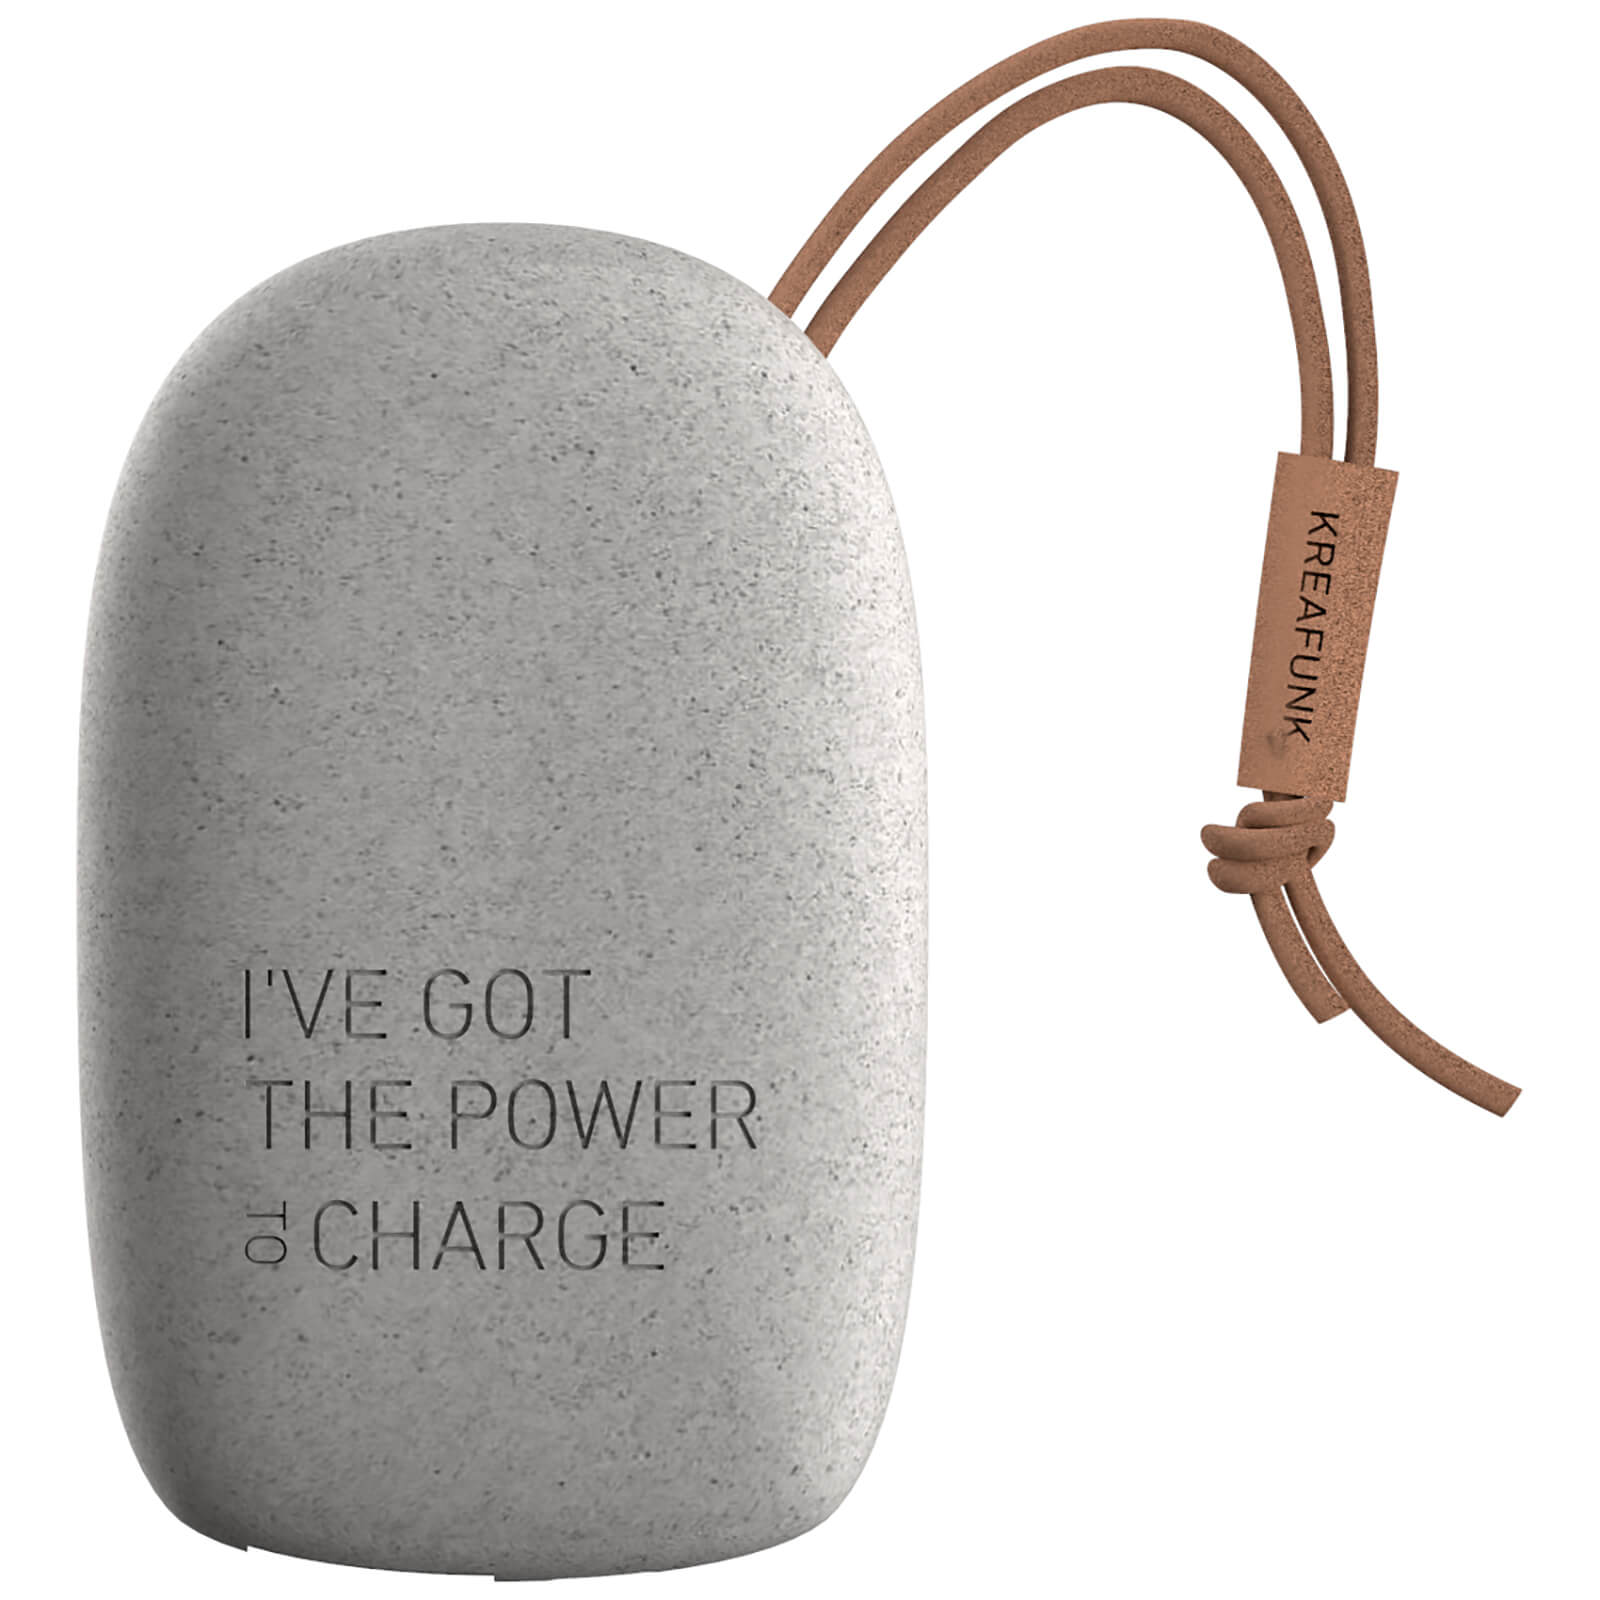 Kreafunk toCHARGE Power Bank - Care Collection